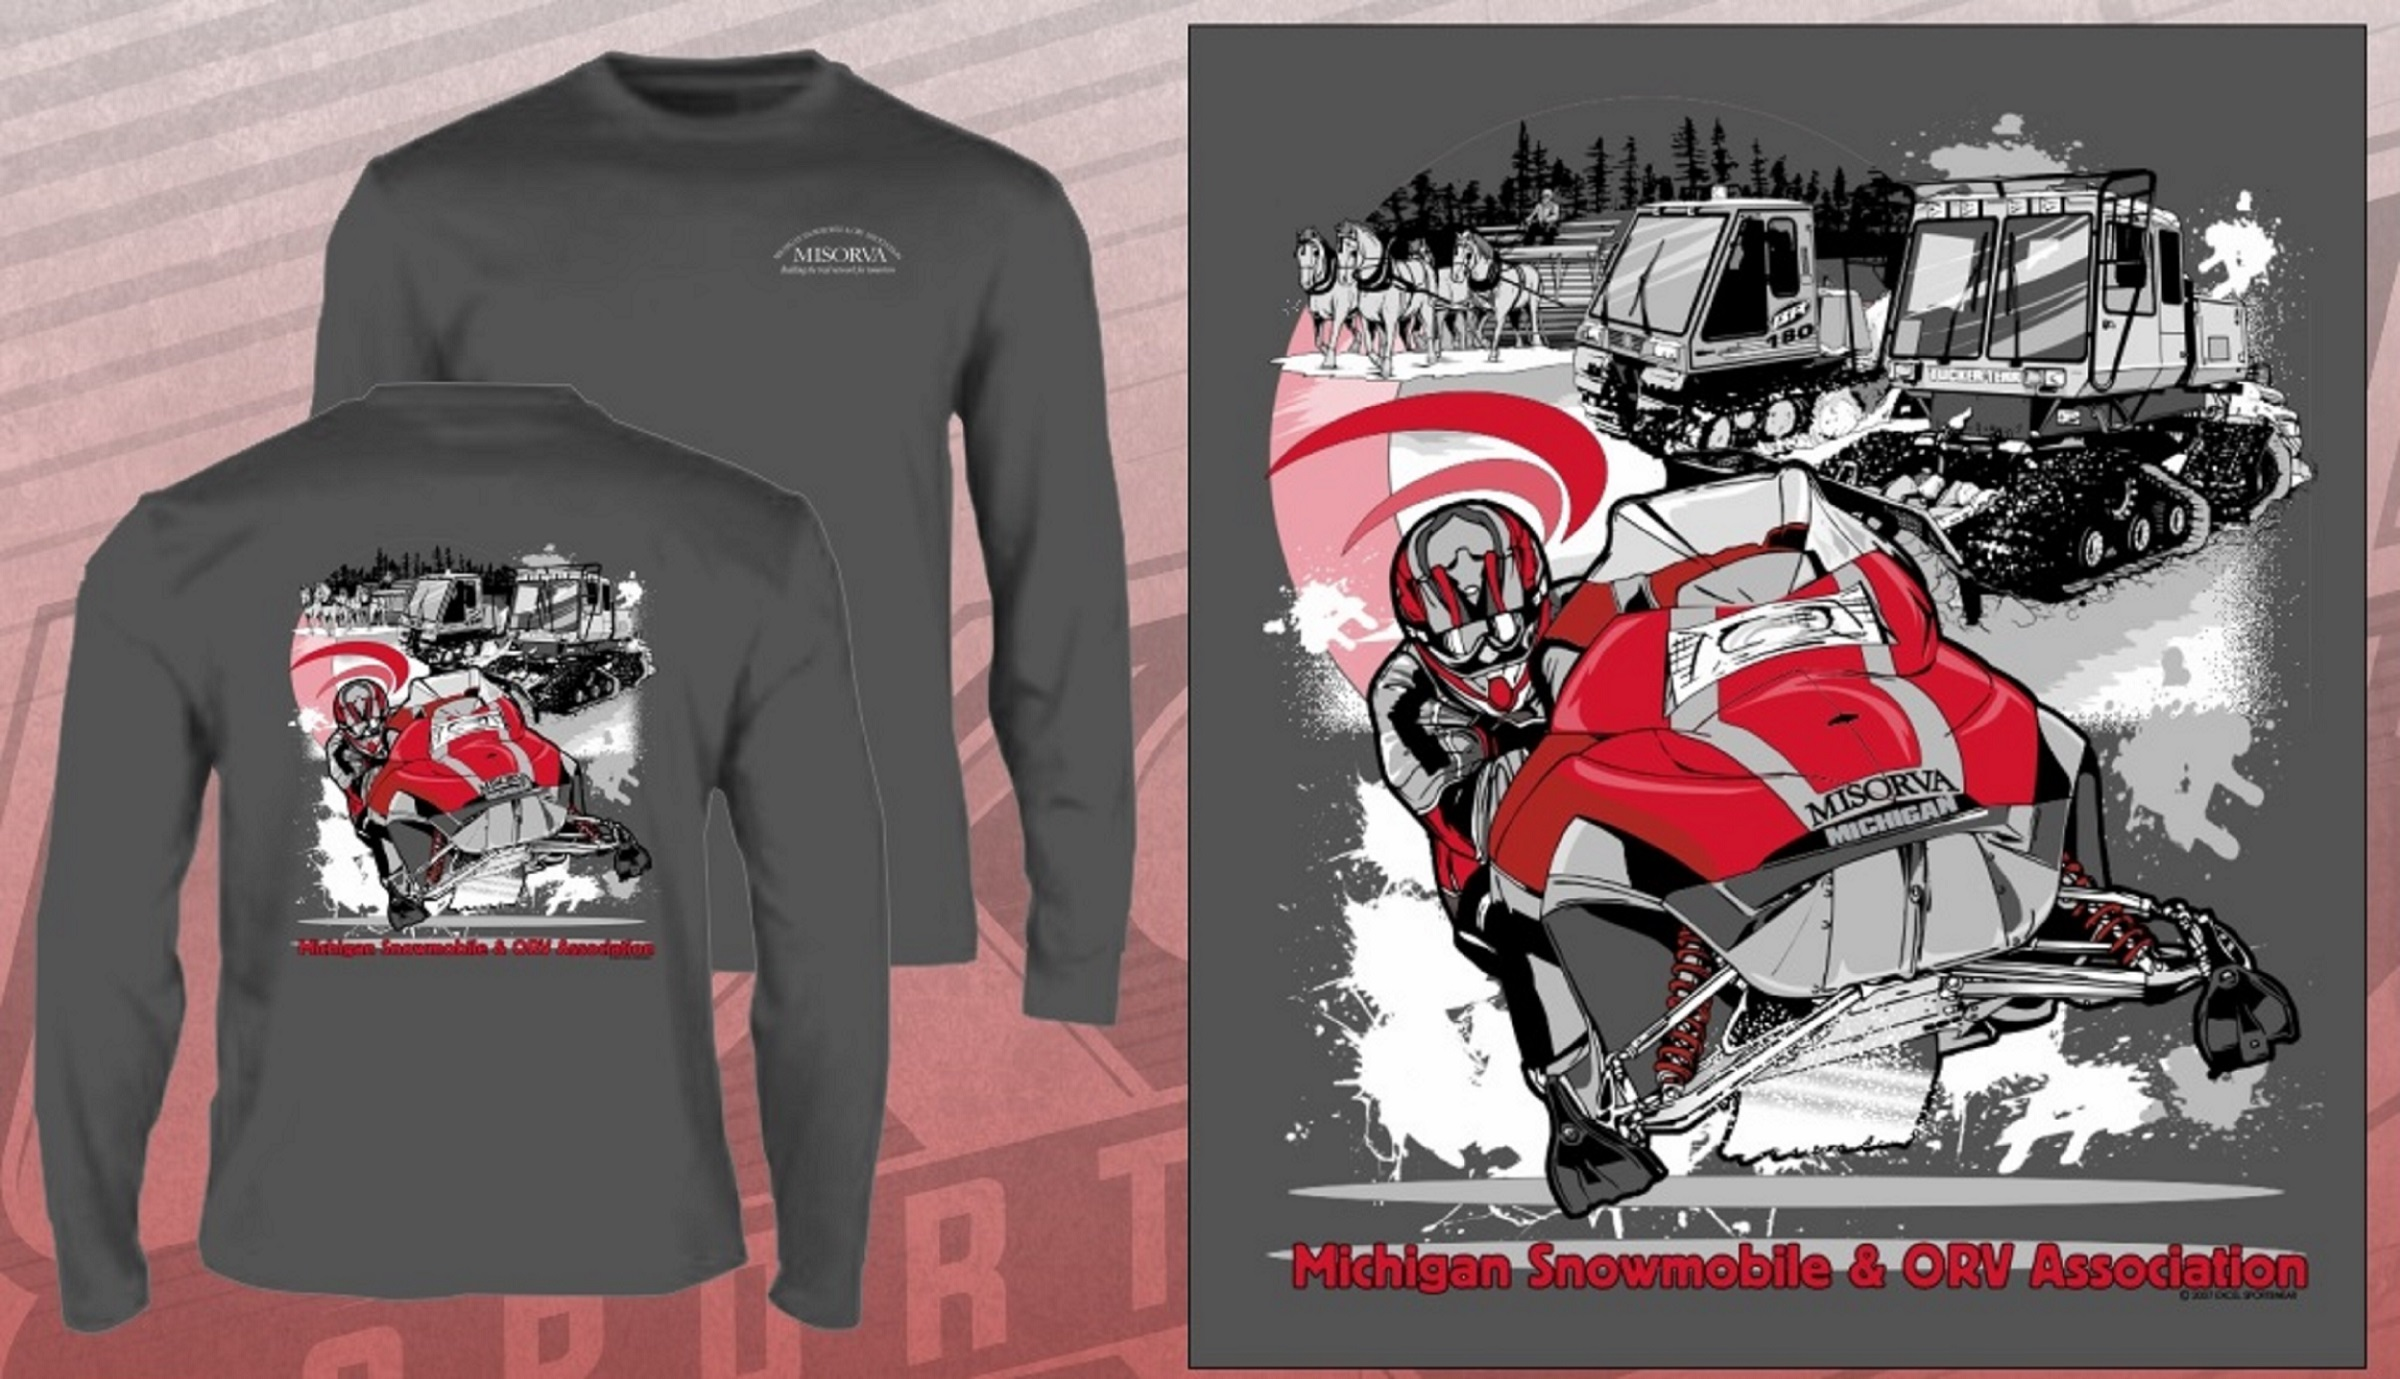 MICHIGAN SNOWMOBILE ASSOCIATION 642011083 TEE